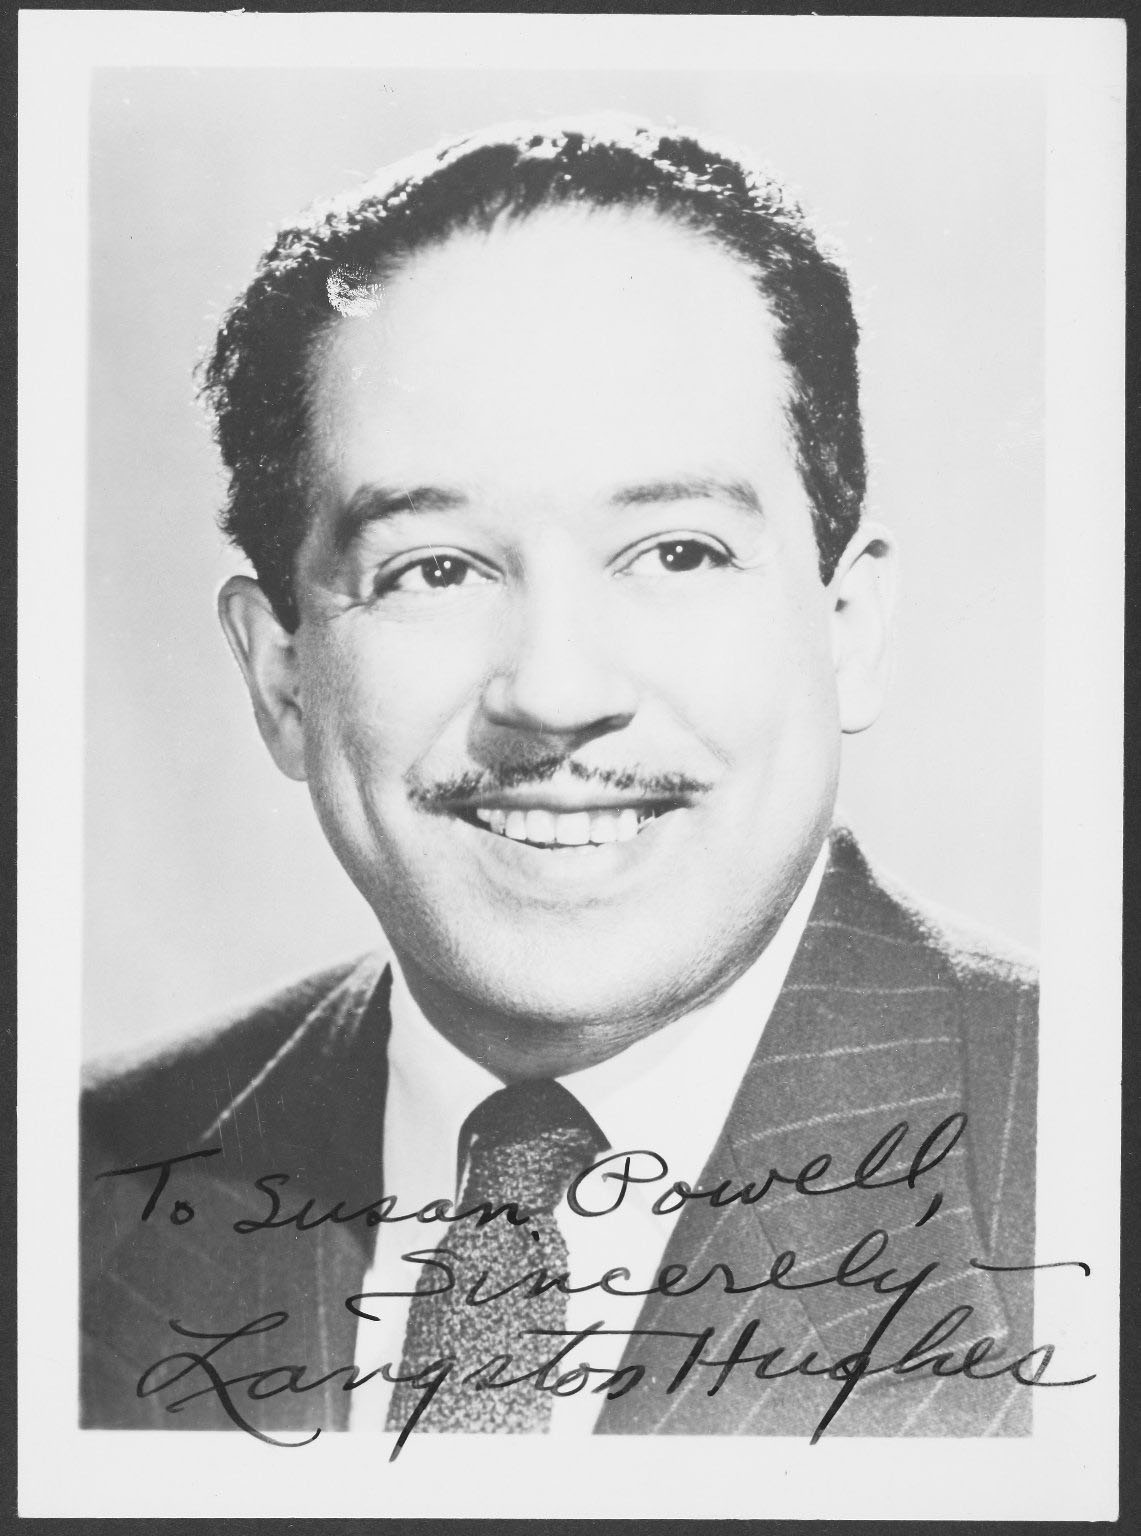 langston hughes prolific writer of black pride Langston hughes, negro poet, author and playwright, who for more than 35 years wrote of what it was like to be a black man in america, died monday night in a new york hospital hughes was born in joplin, mo, feb 1, 1902.